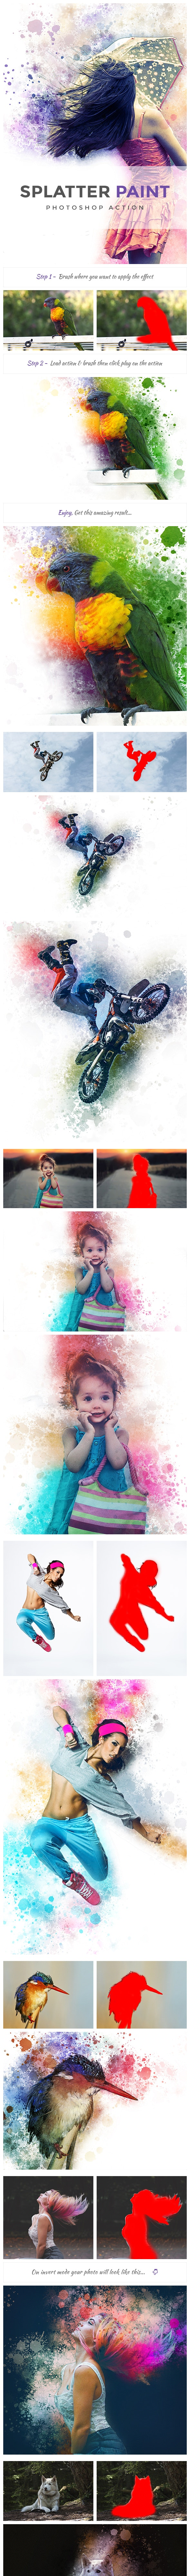 Splatter Paint | PS Action - Photo Effects Actions